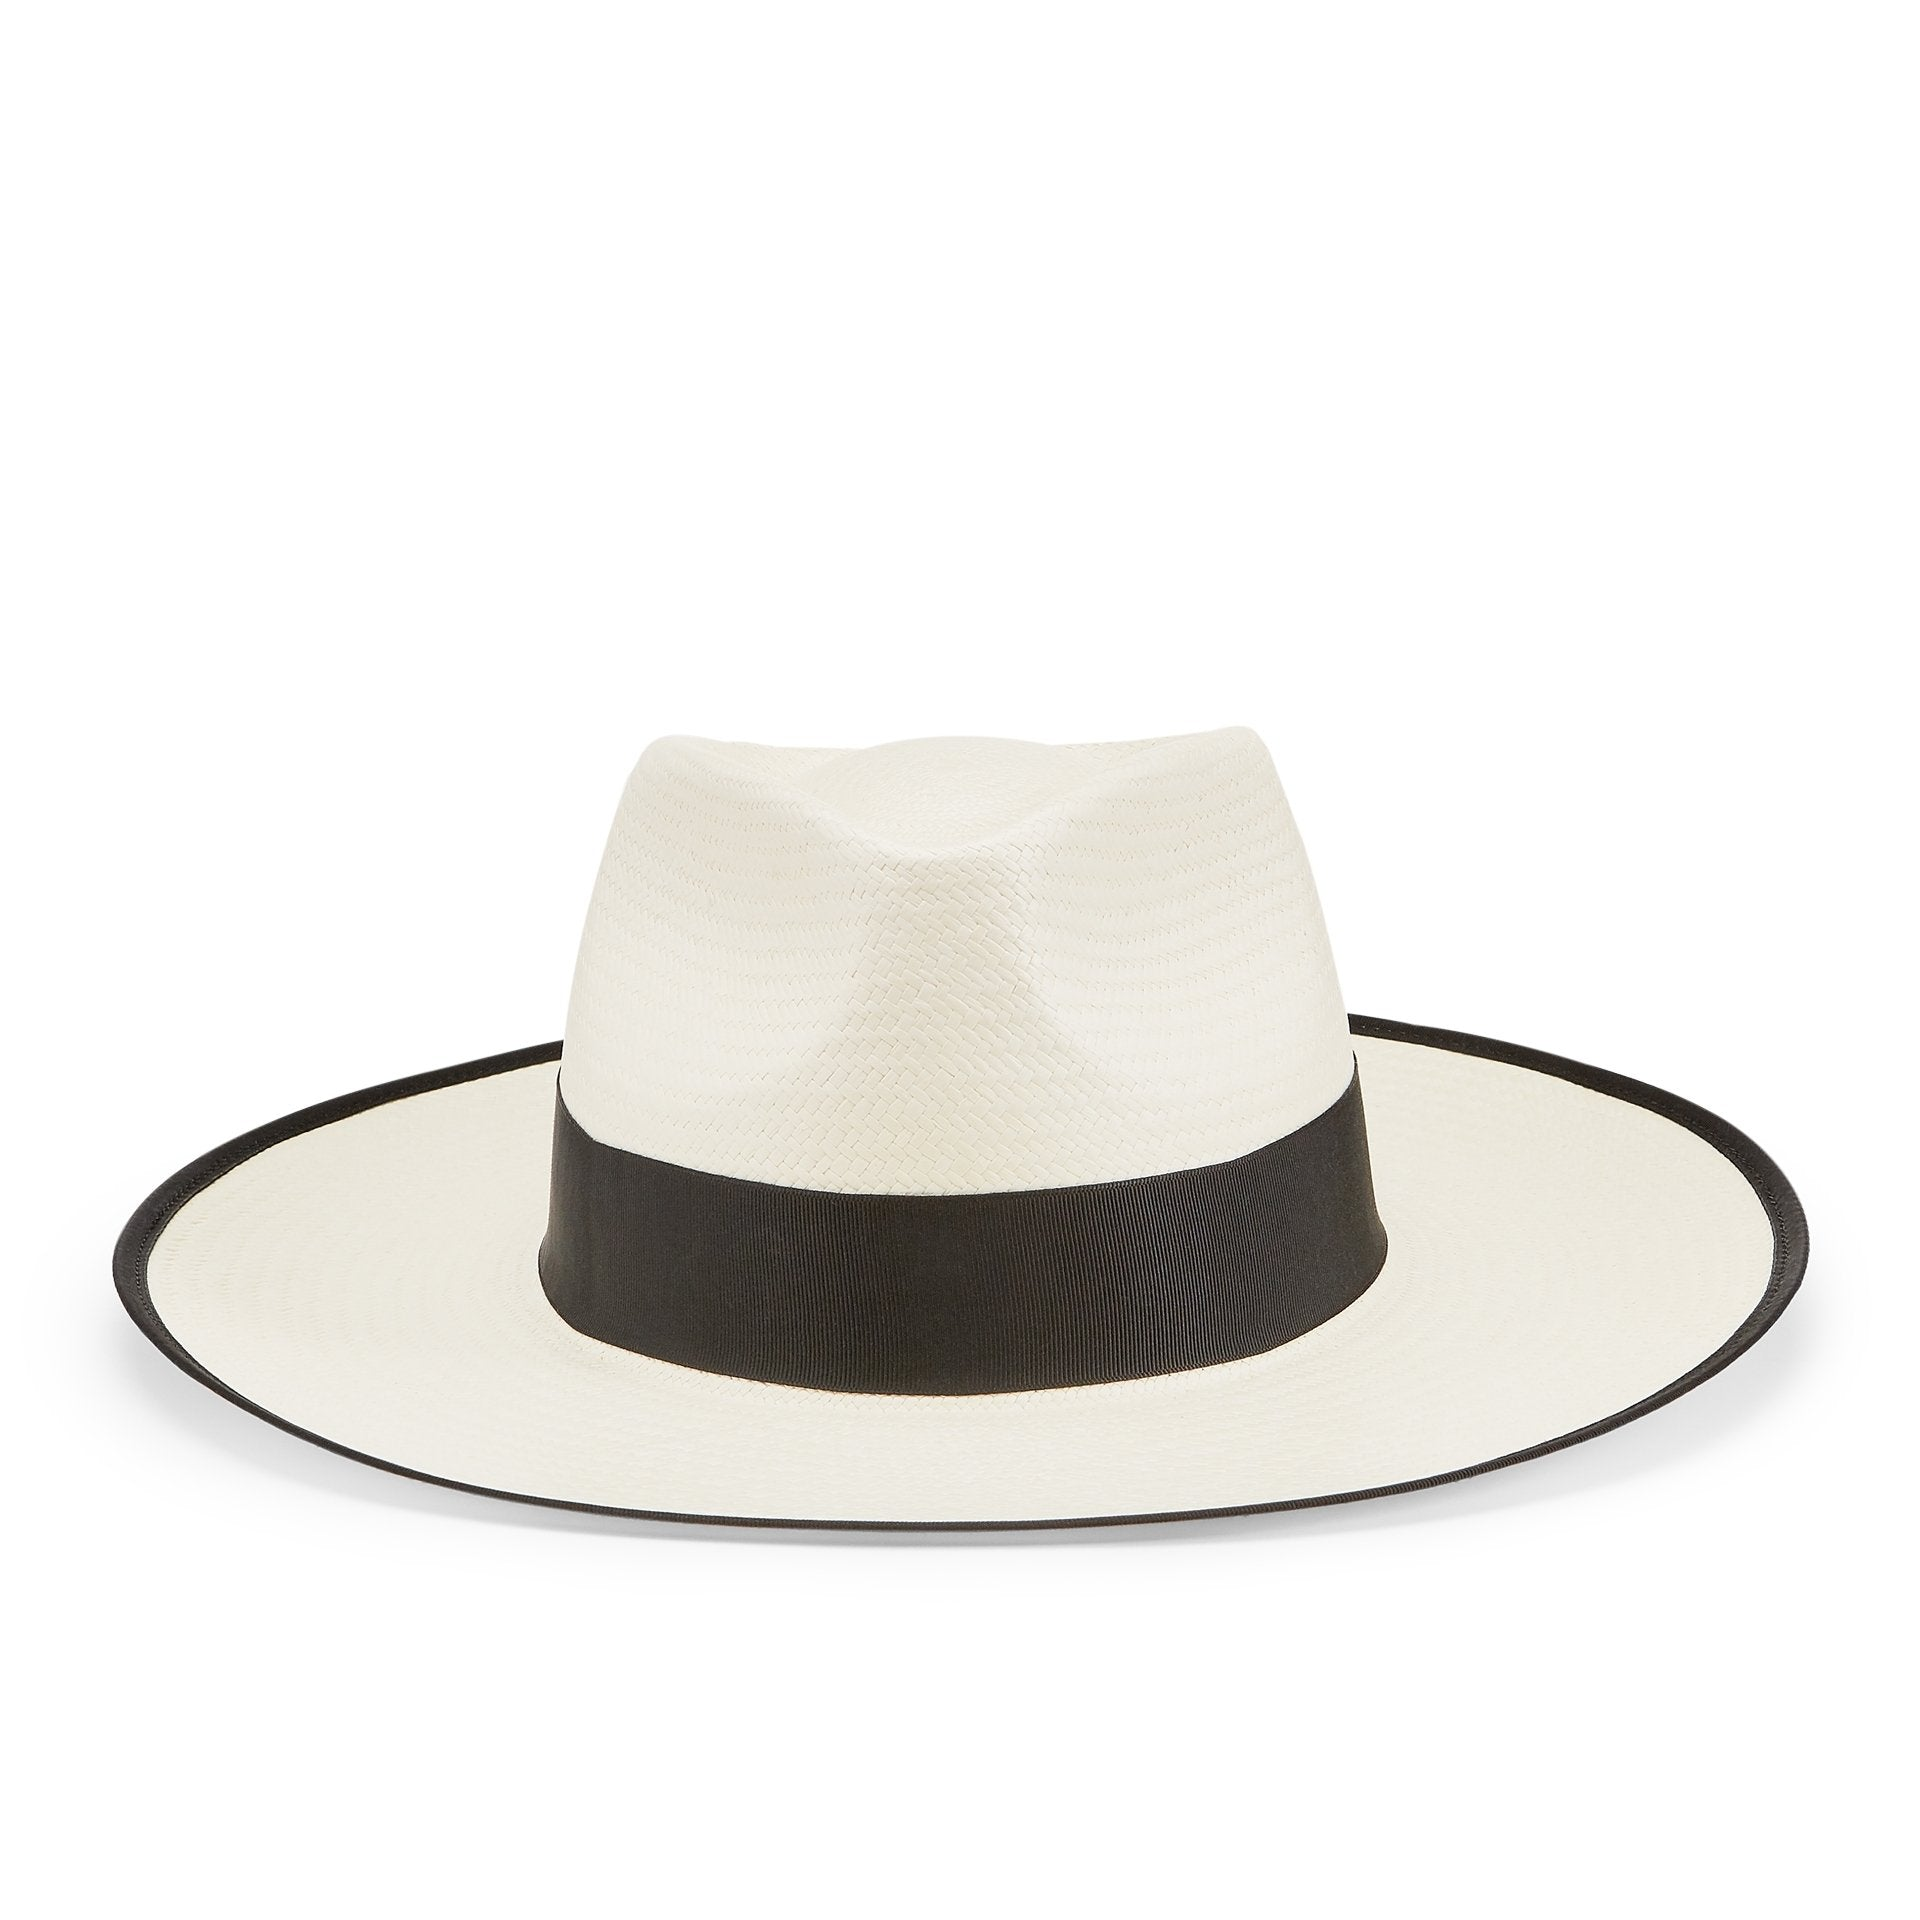 Casablanca Panama - Panamas, Straw and Sun Hats for Women - Lock & Co. Hatters London UK